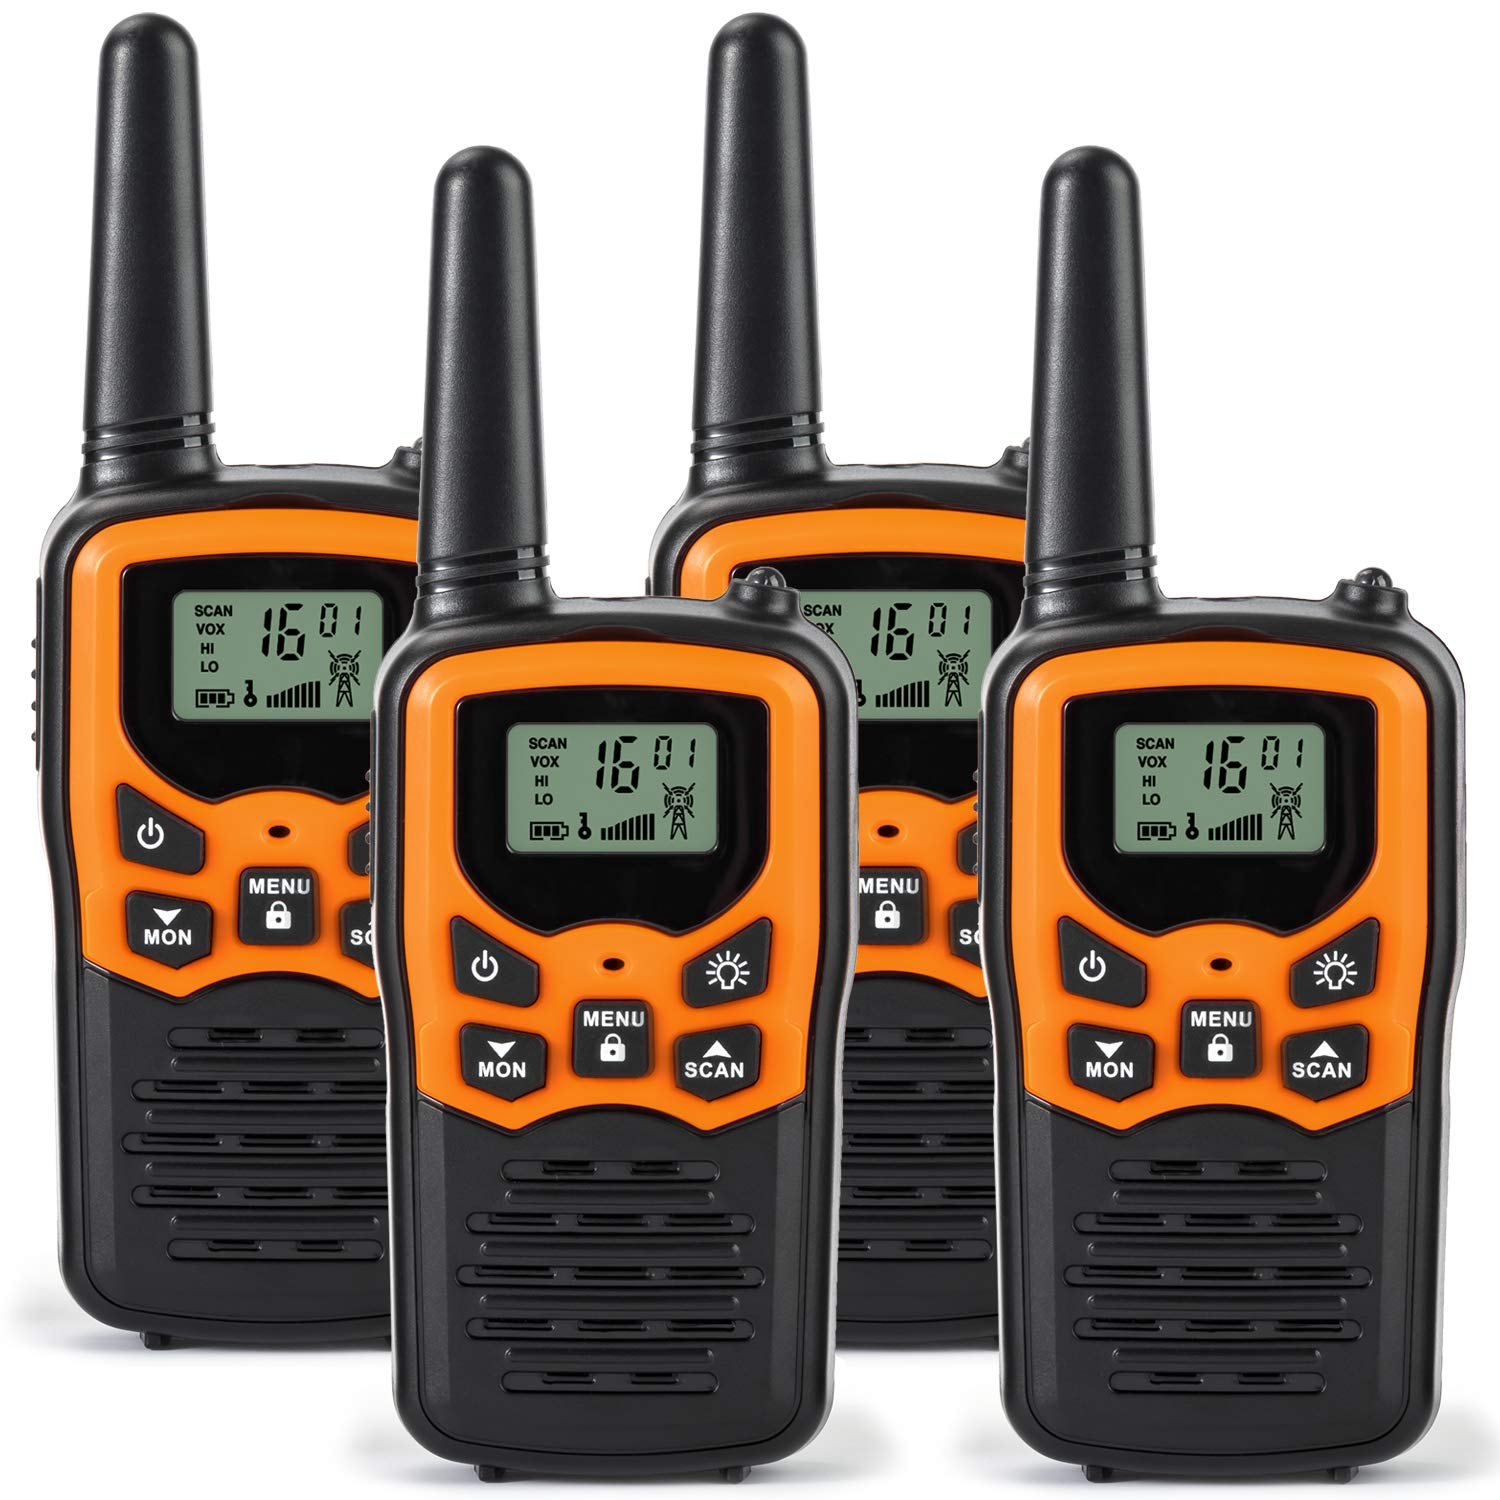 Rivins RV-7 Walkie Talkies for Adults Long Range 4 Pack 2-Way Radios Up to 5 Miles Range in Open Field 22 Channel FRS/GMRS Walkie Talkies UHF Handheld Walky Talky (Black/Orange) by Rivins